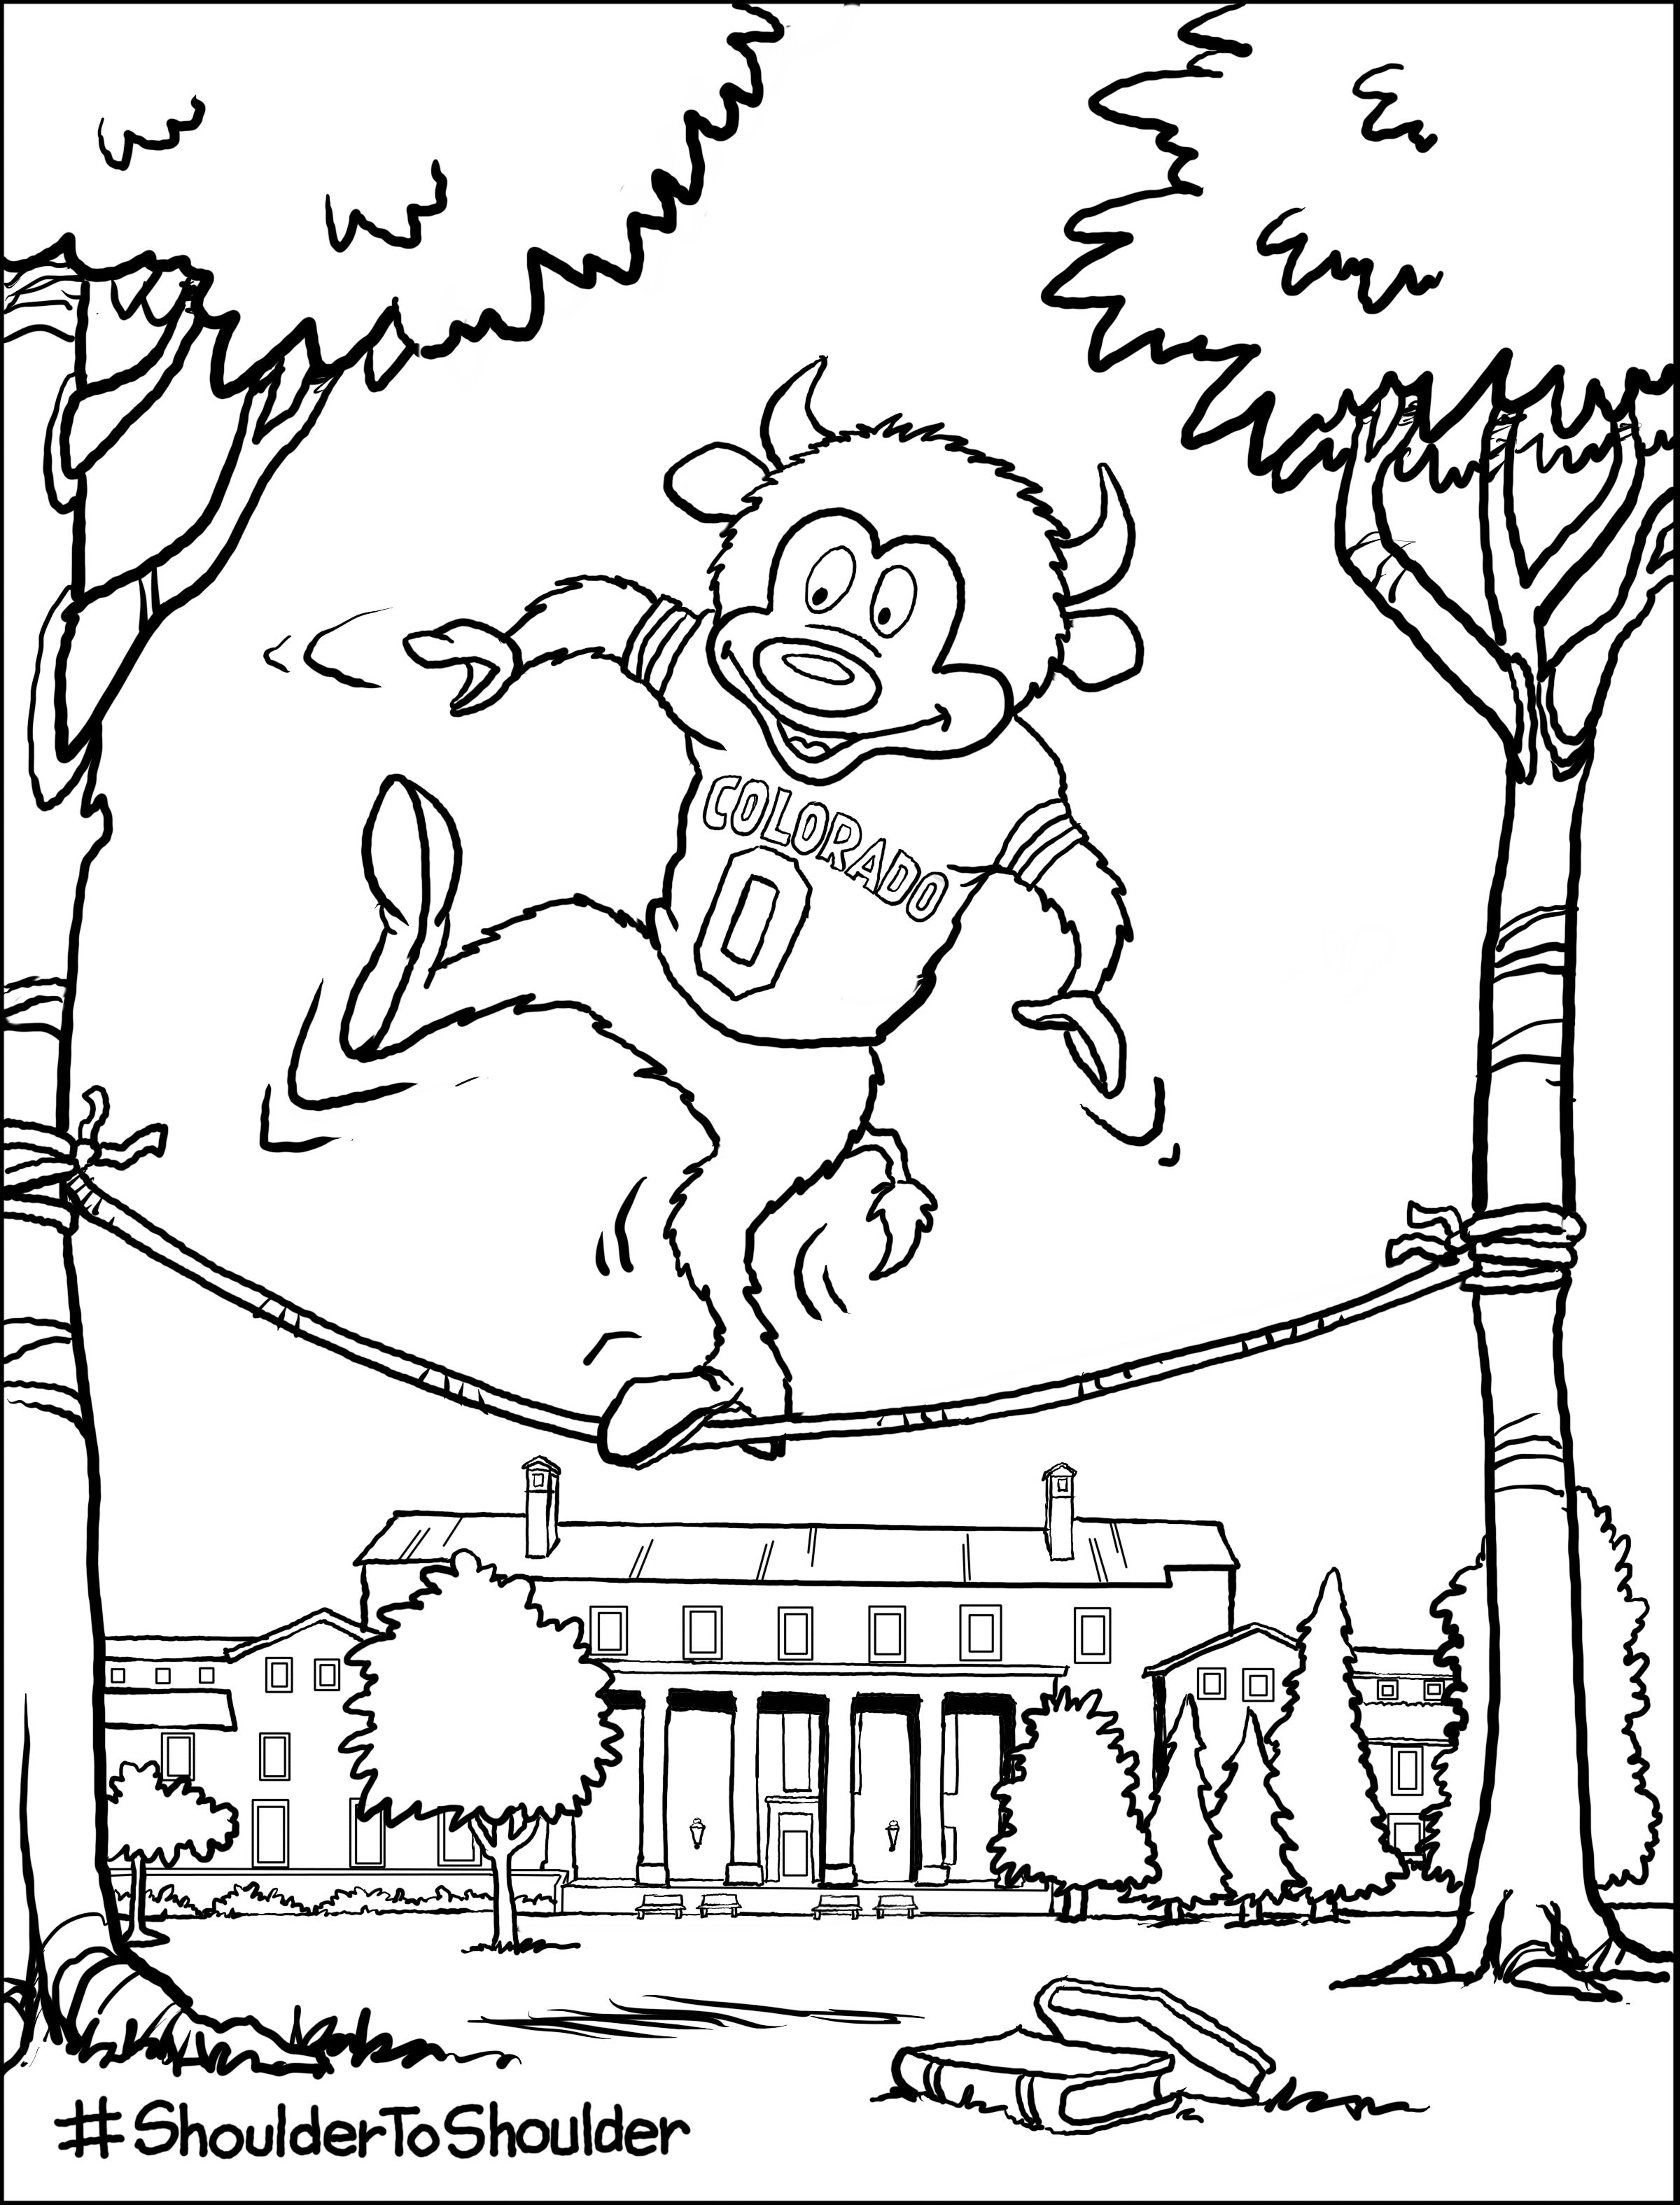 coloring page of CU Boulder mascot Chip slacklining in front of Norlin library